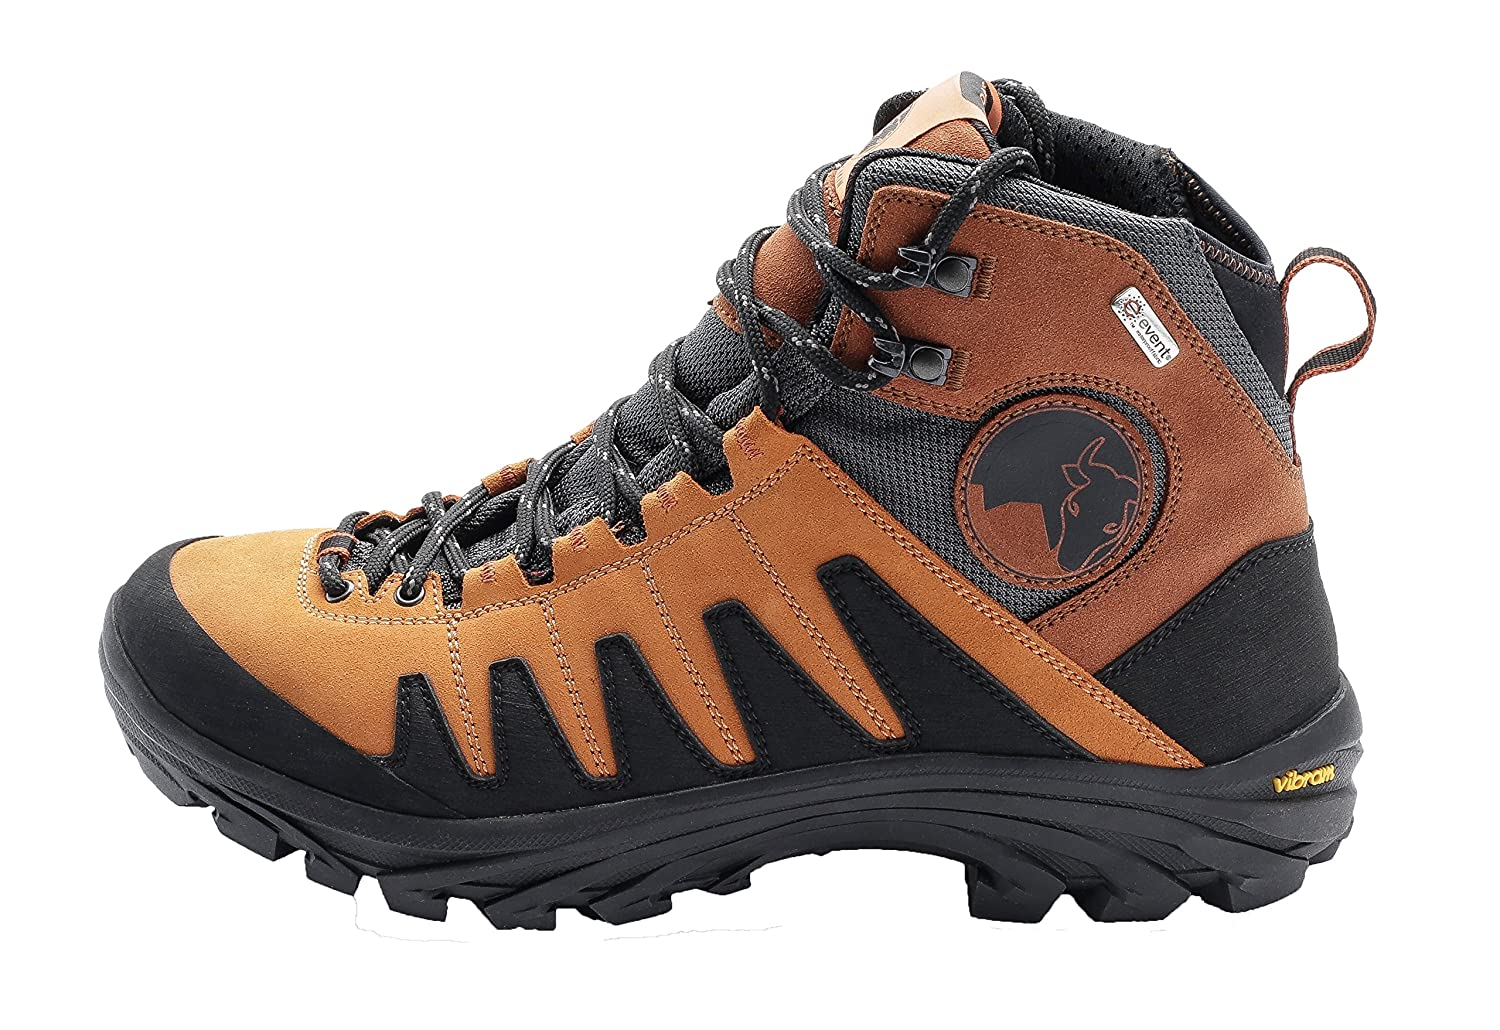 Mishmi Takin Kameng Mid Event Waterproof Hiking Boot B06XFJ1S61 EU 44 / US M 11|Sunset Orange